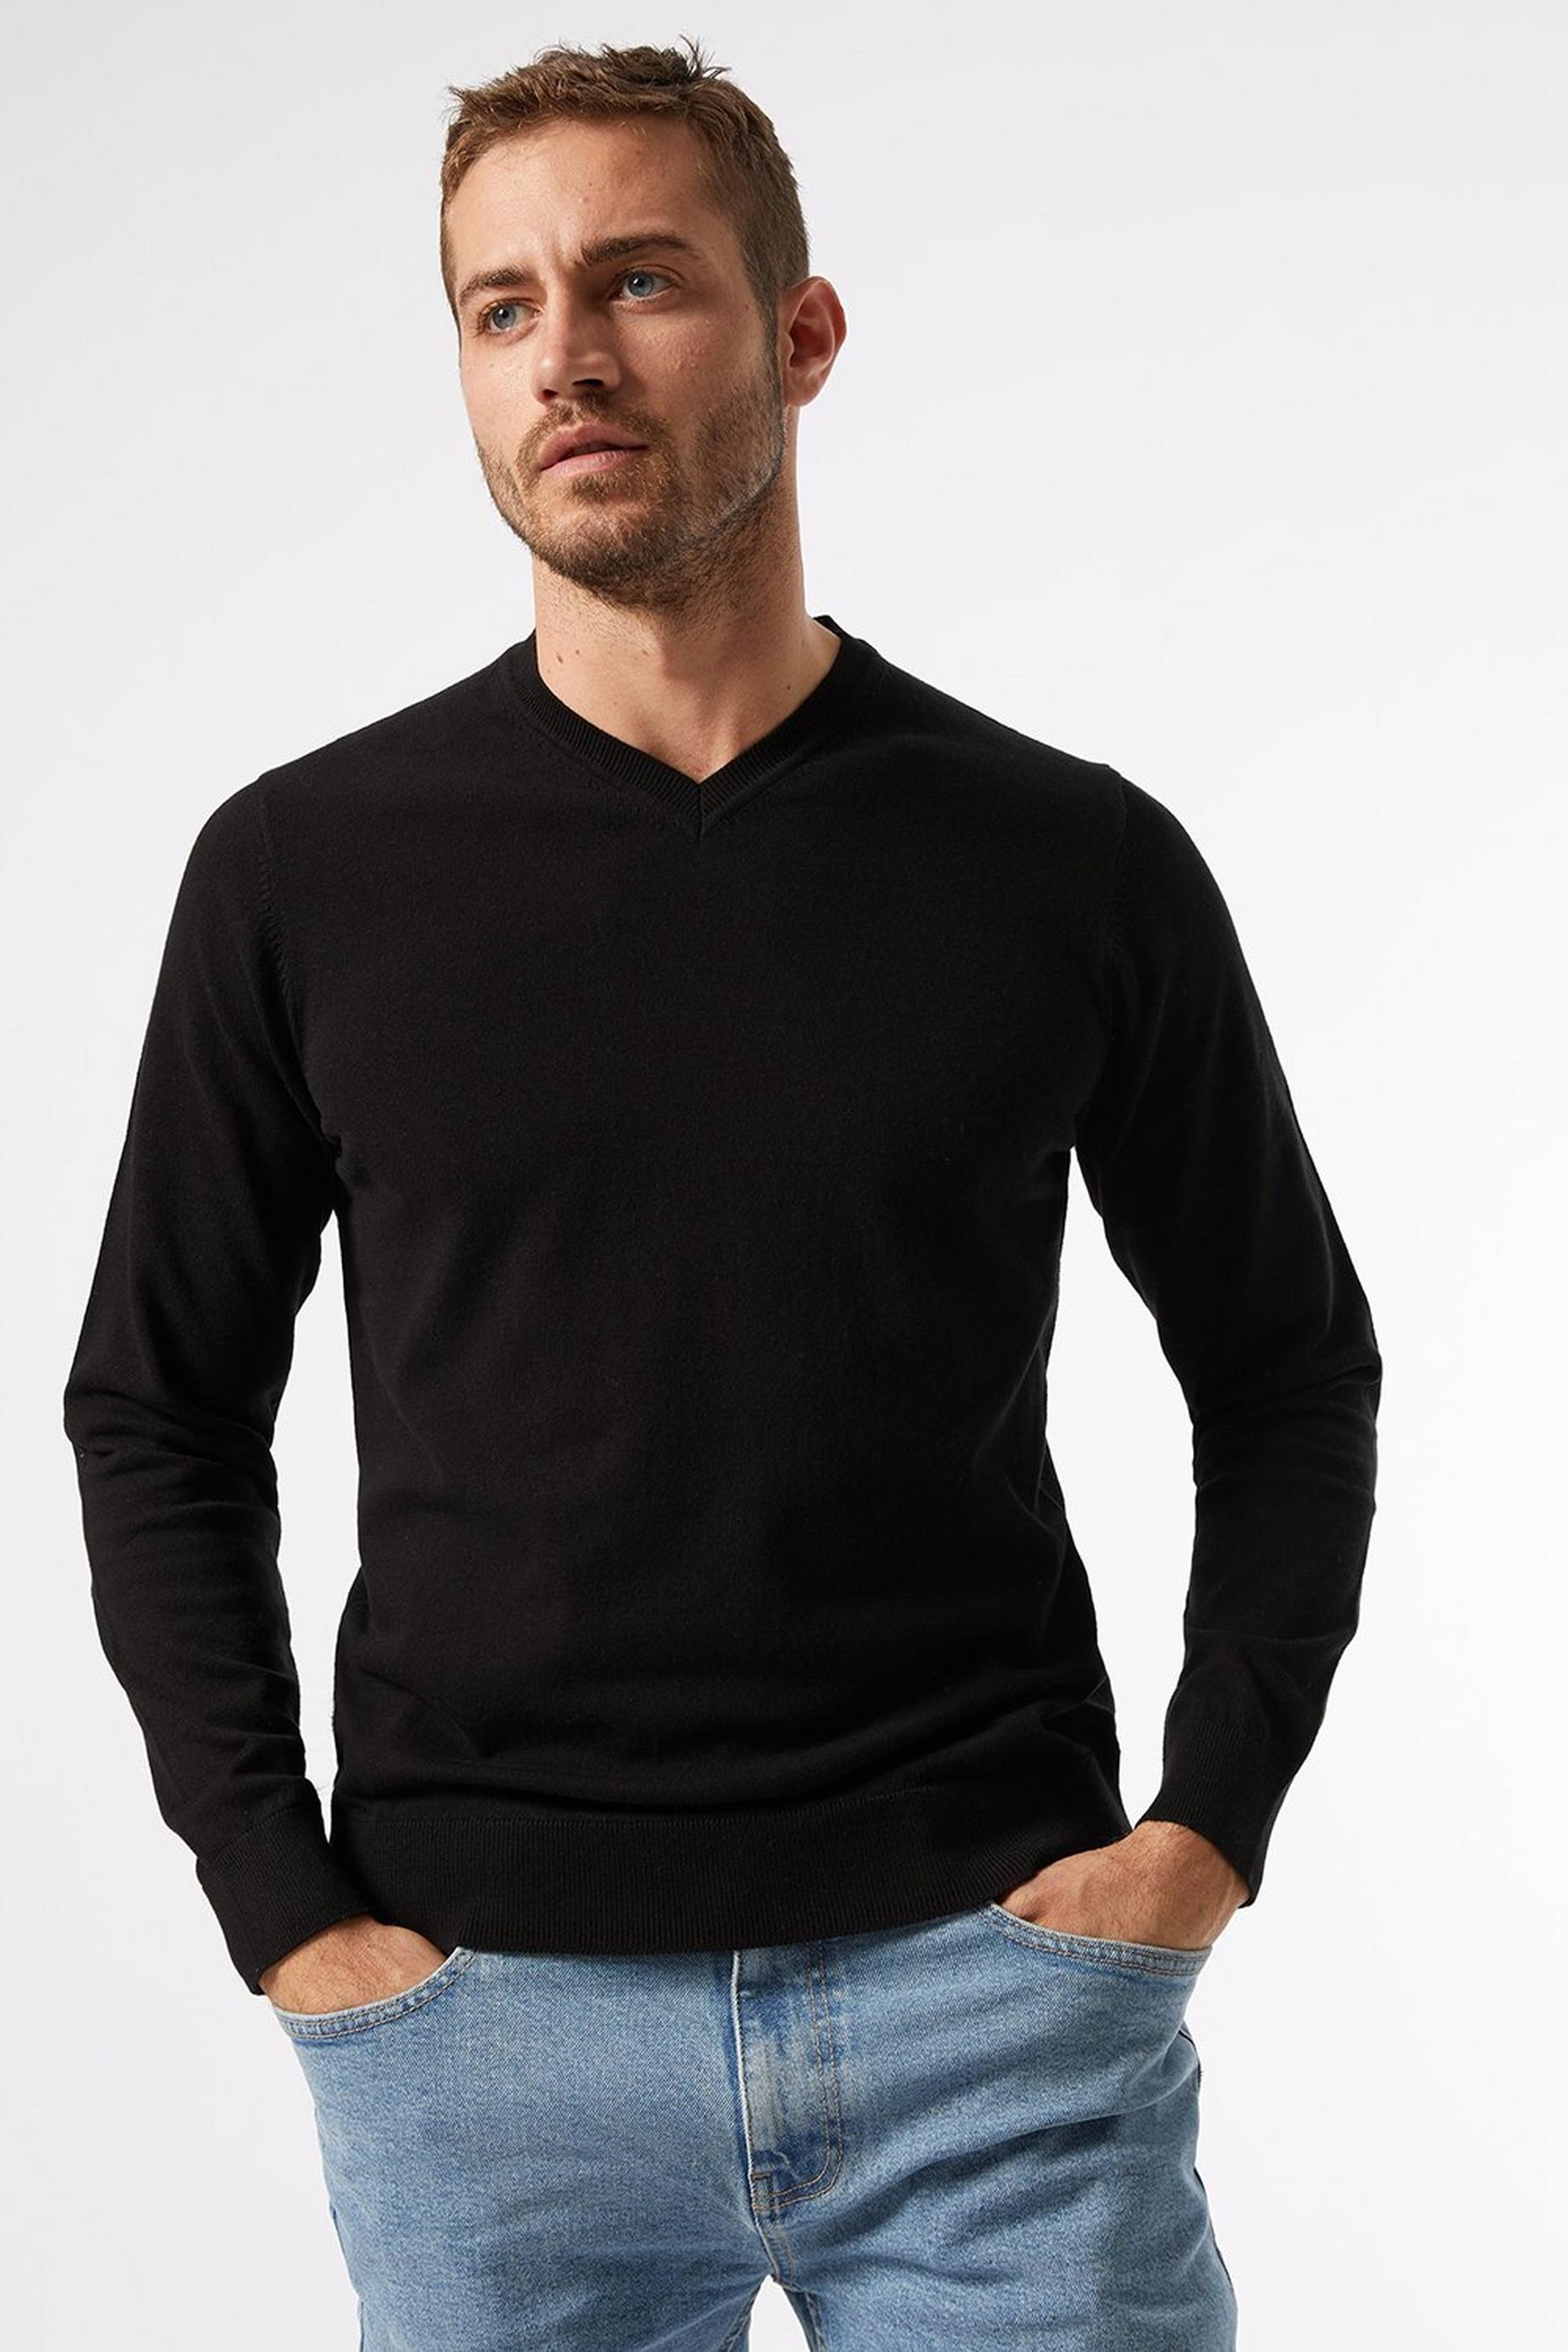 Black VNeck Jumper With Organic Cotton